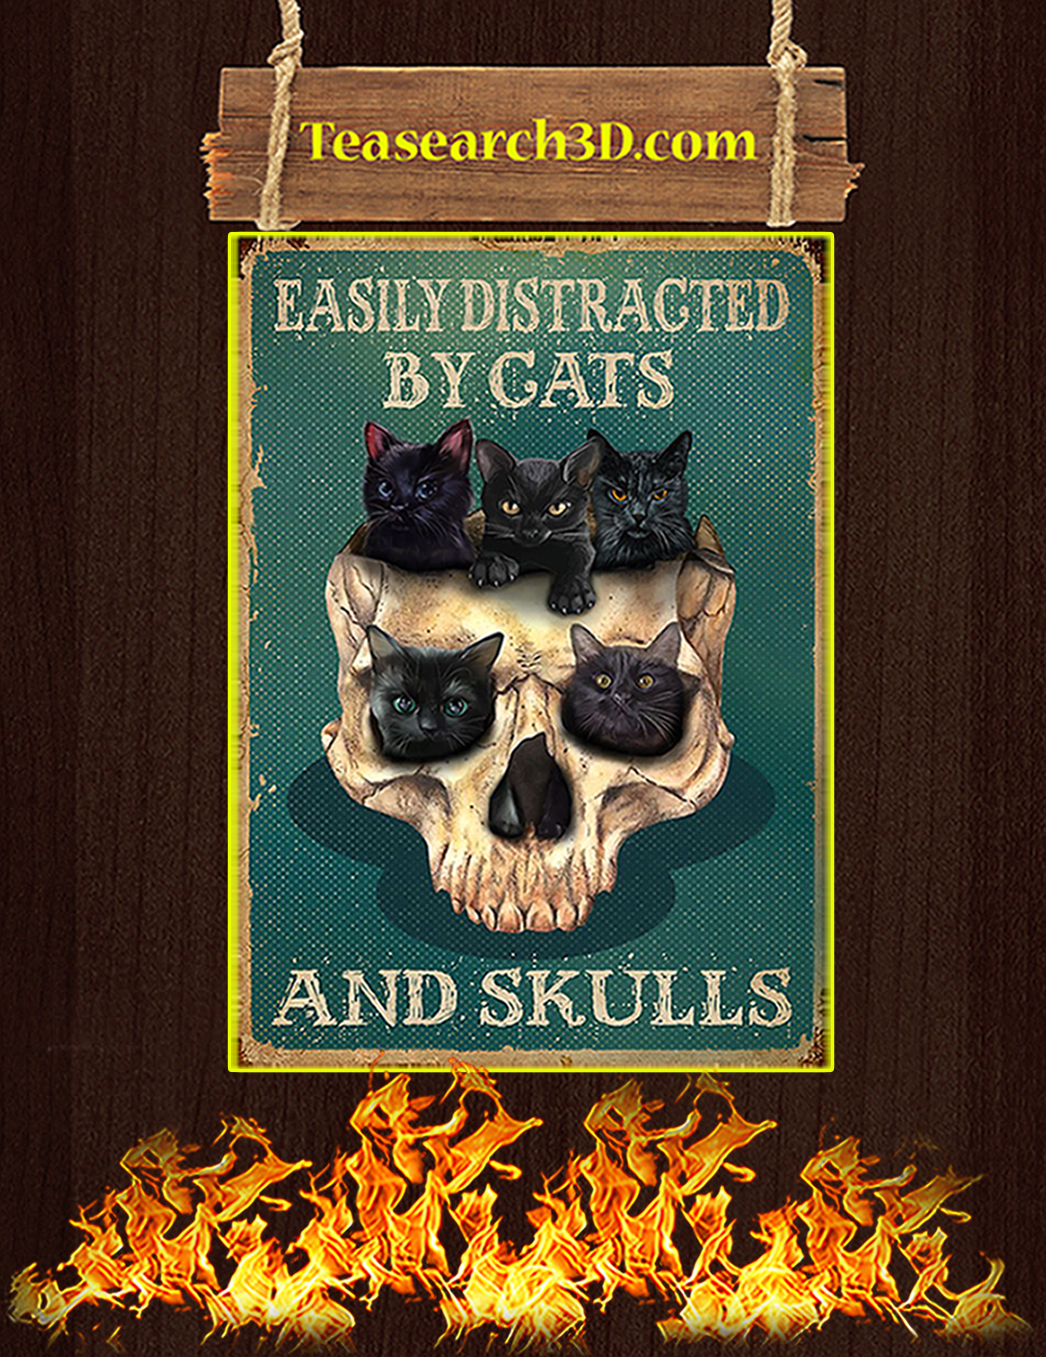 Easily distracted by cats and skulls poster A1